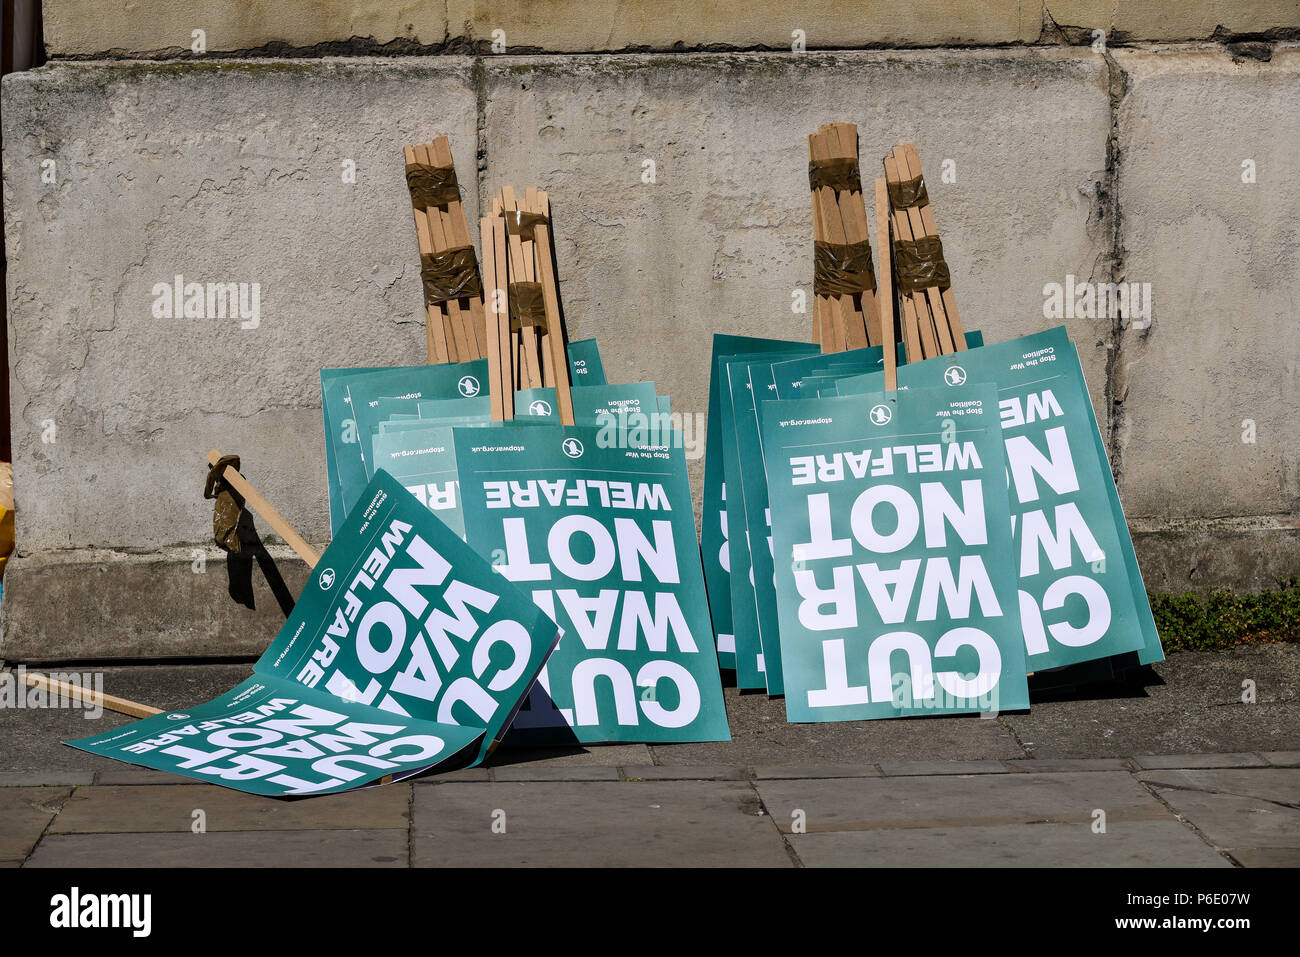 70th anniversary of the National Health Service. The event is also being used to demonstrate against austerity, funding cuts and attempts to sell departments to the private sector - Stock Image